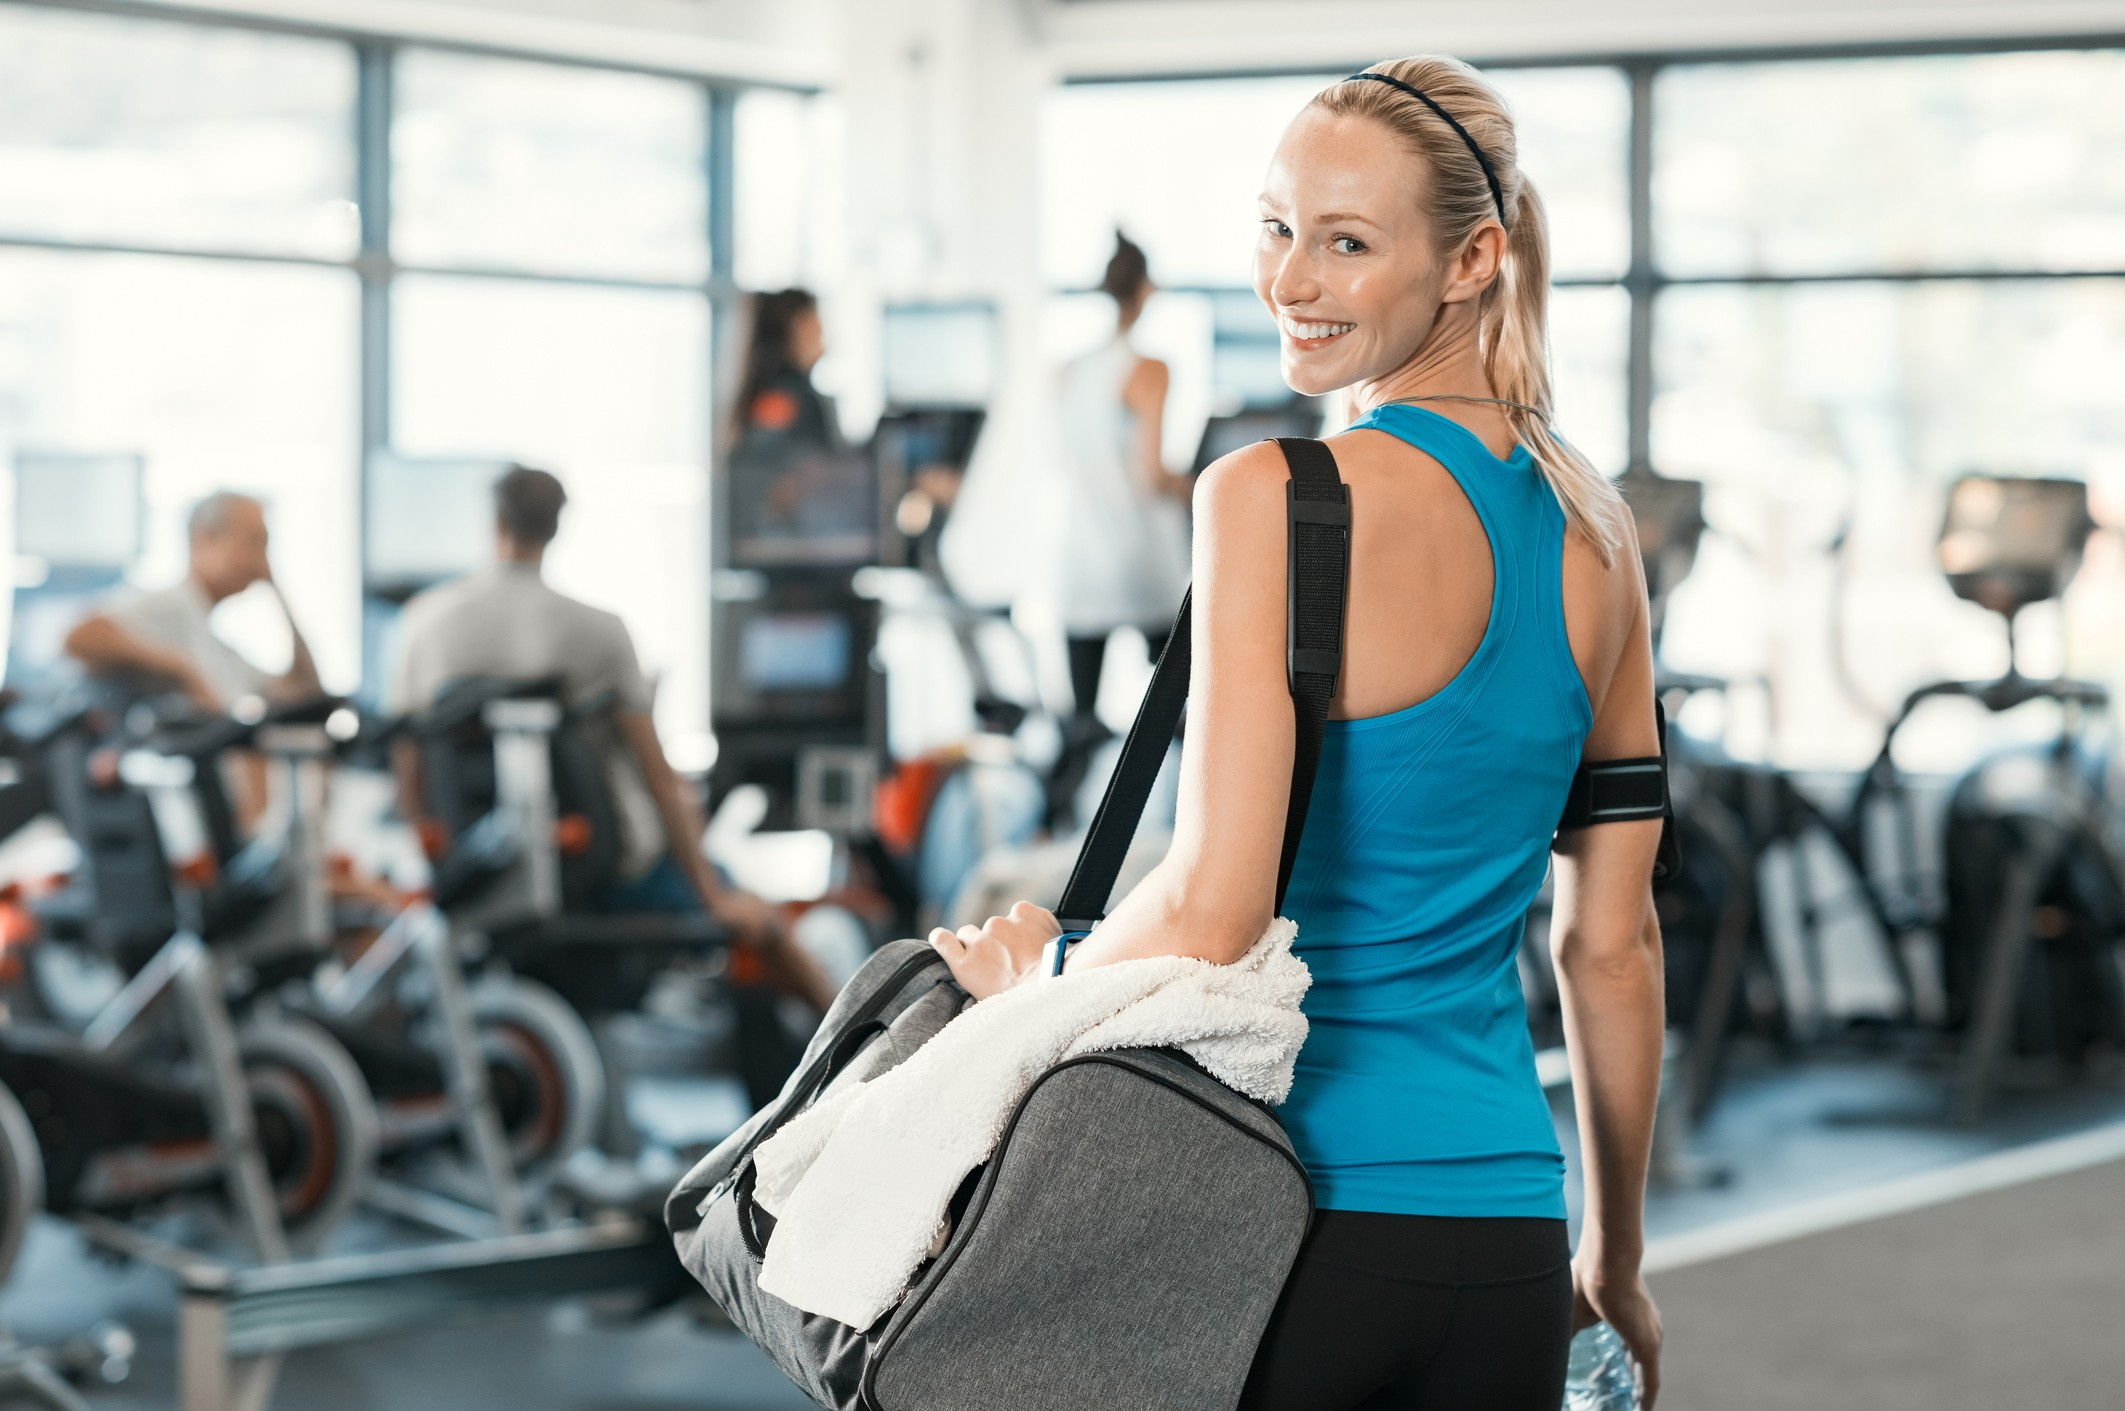 woman holding gym bag in a fitness centre.